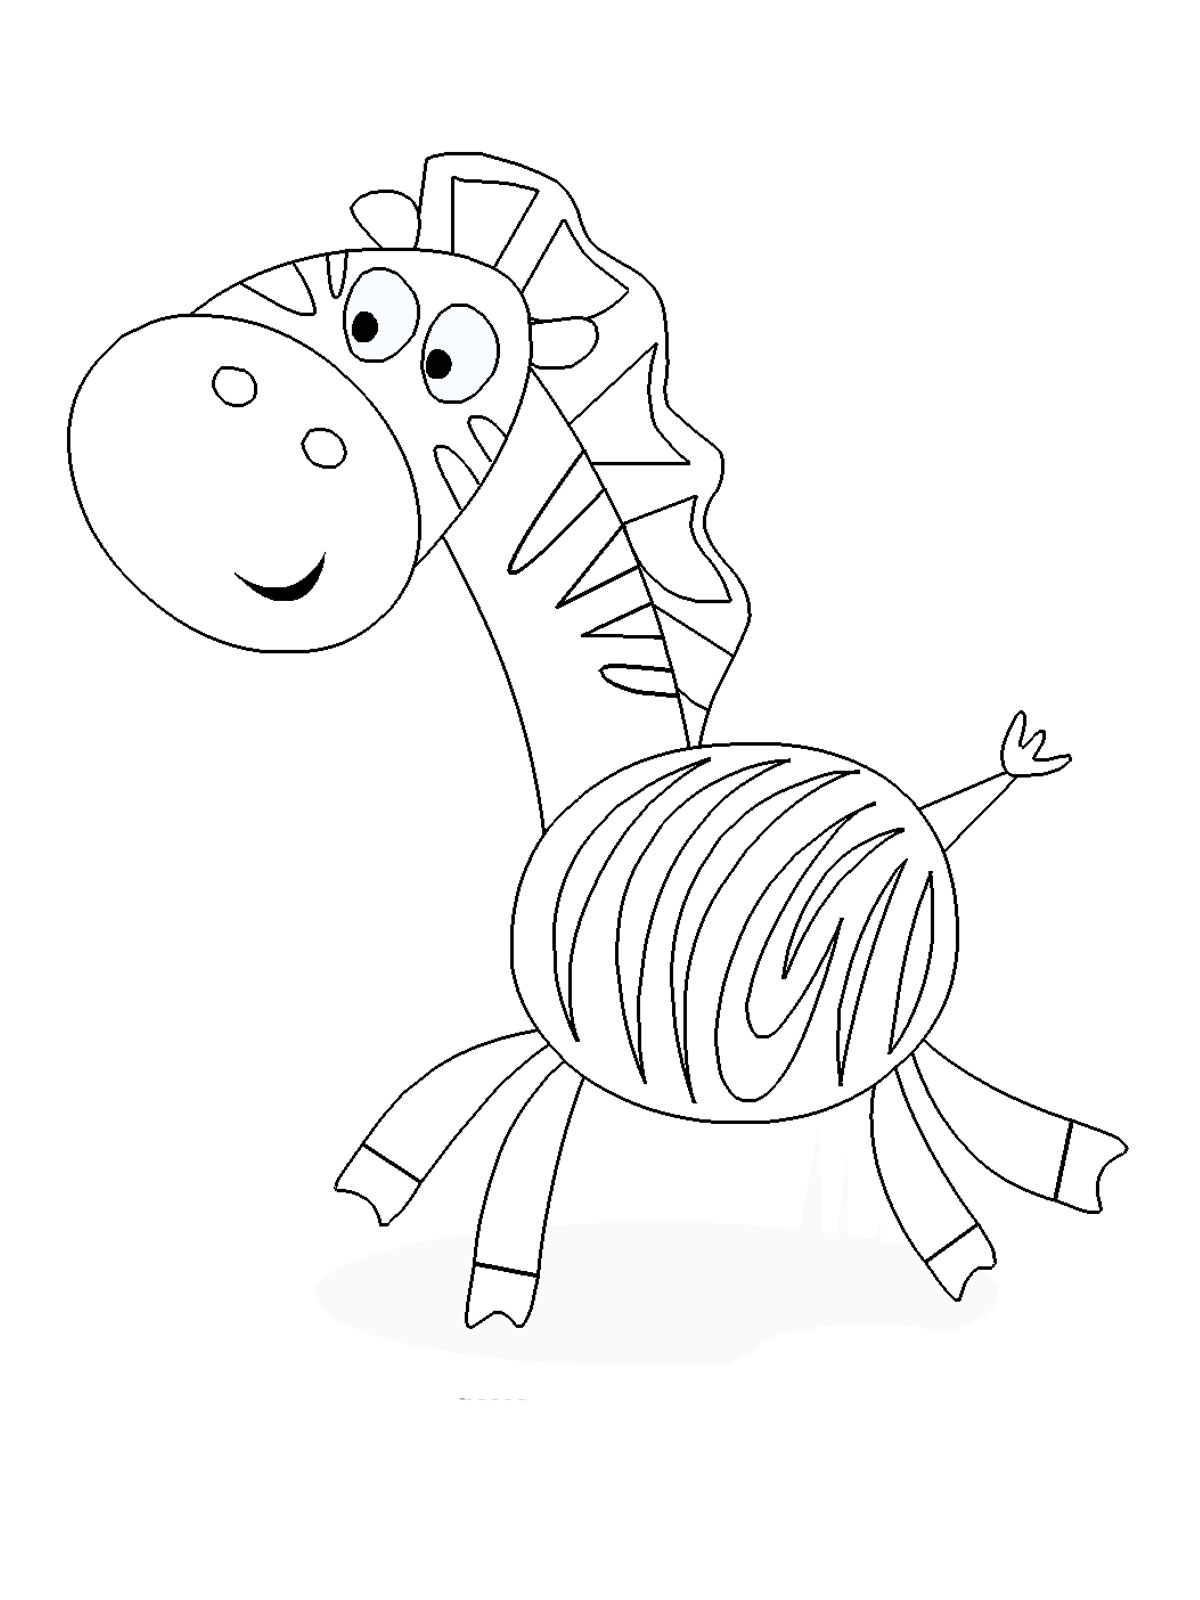 coloring template for kids coloring pages for young kids at getcoloringscom free template for kids coloring